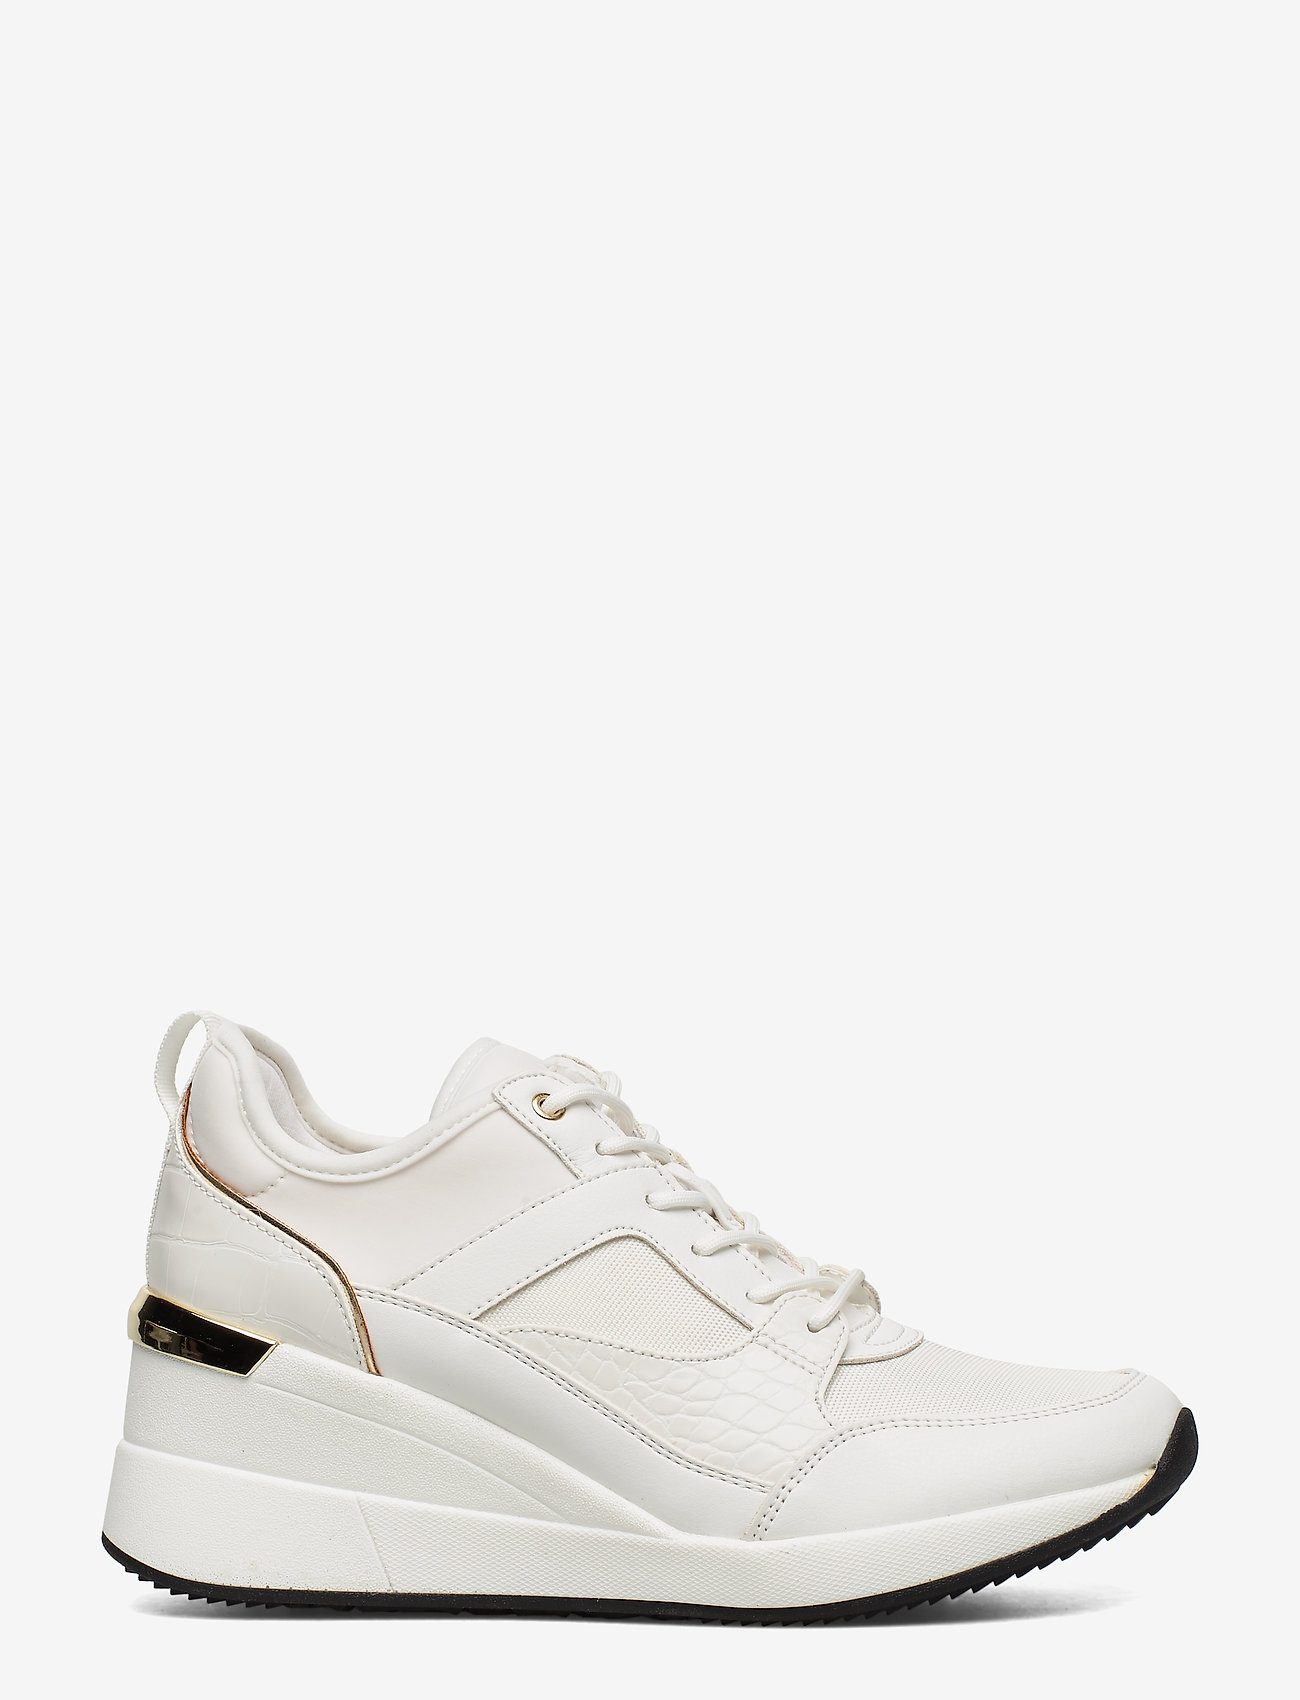 Aldo THRUNDRA - Sneakers WHITE